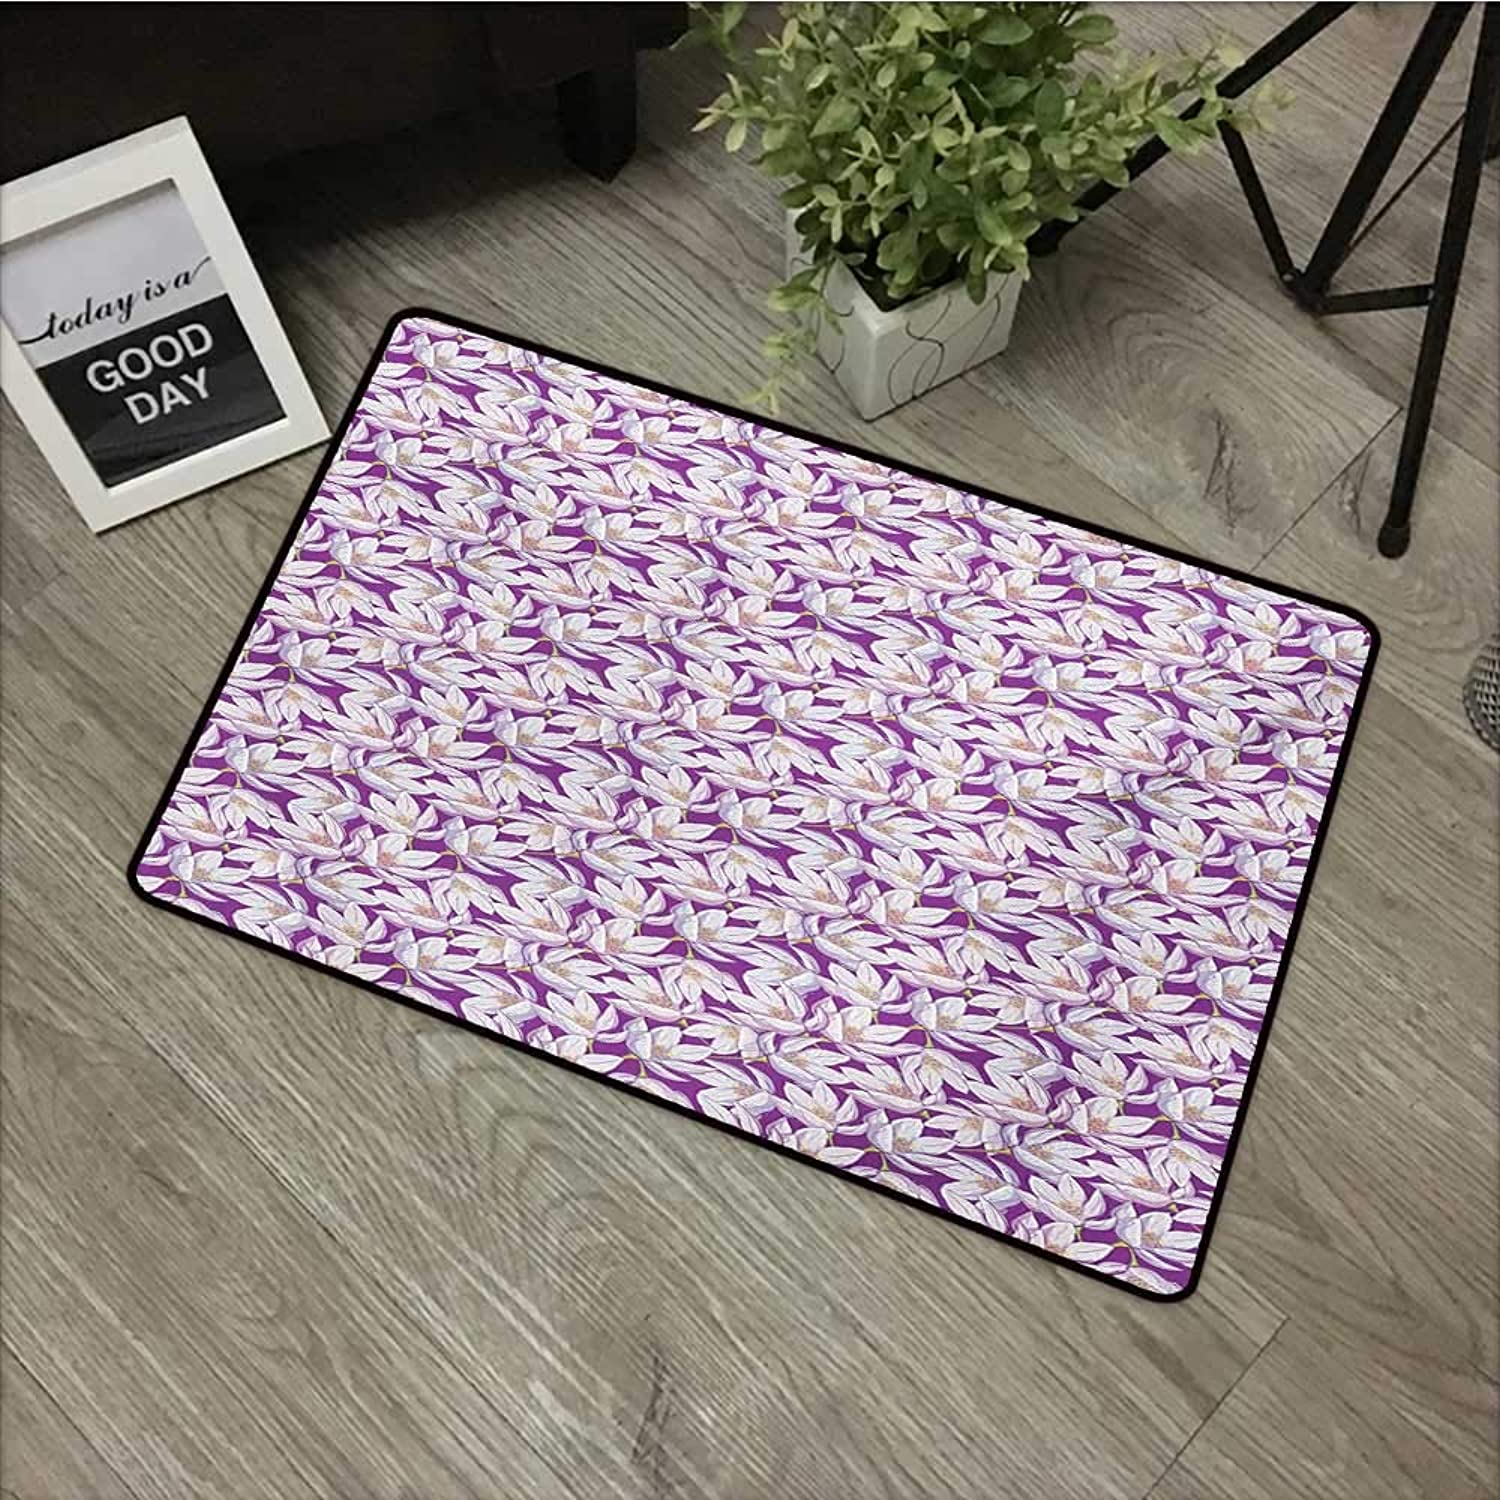 Pool Anti-Slip Door mat W35 x L59 INCH Floral,Blossoming Nature Themed Vintage Romantic Spring Bouquet Illustration,Fuchsia White Yellow Non-Slip Door Mat Carpet